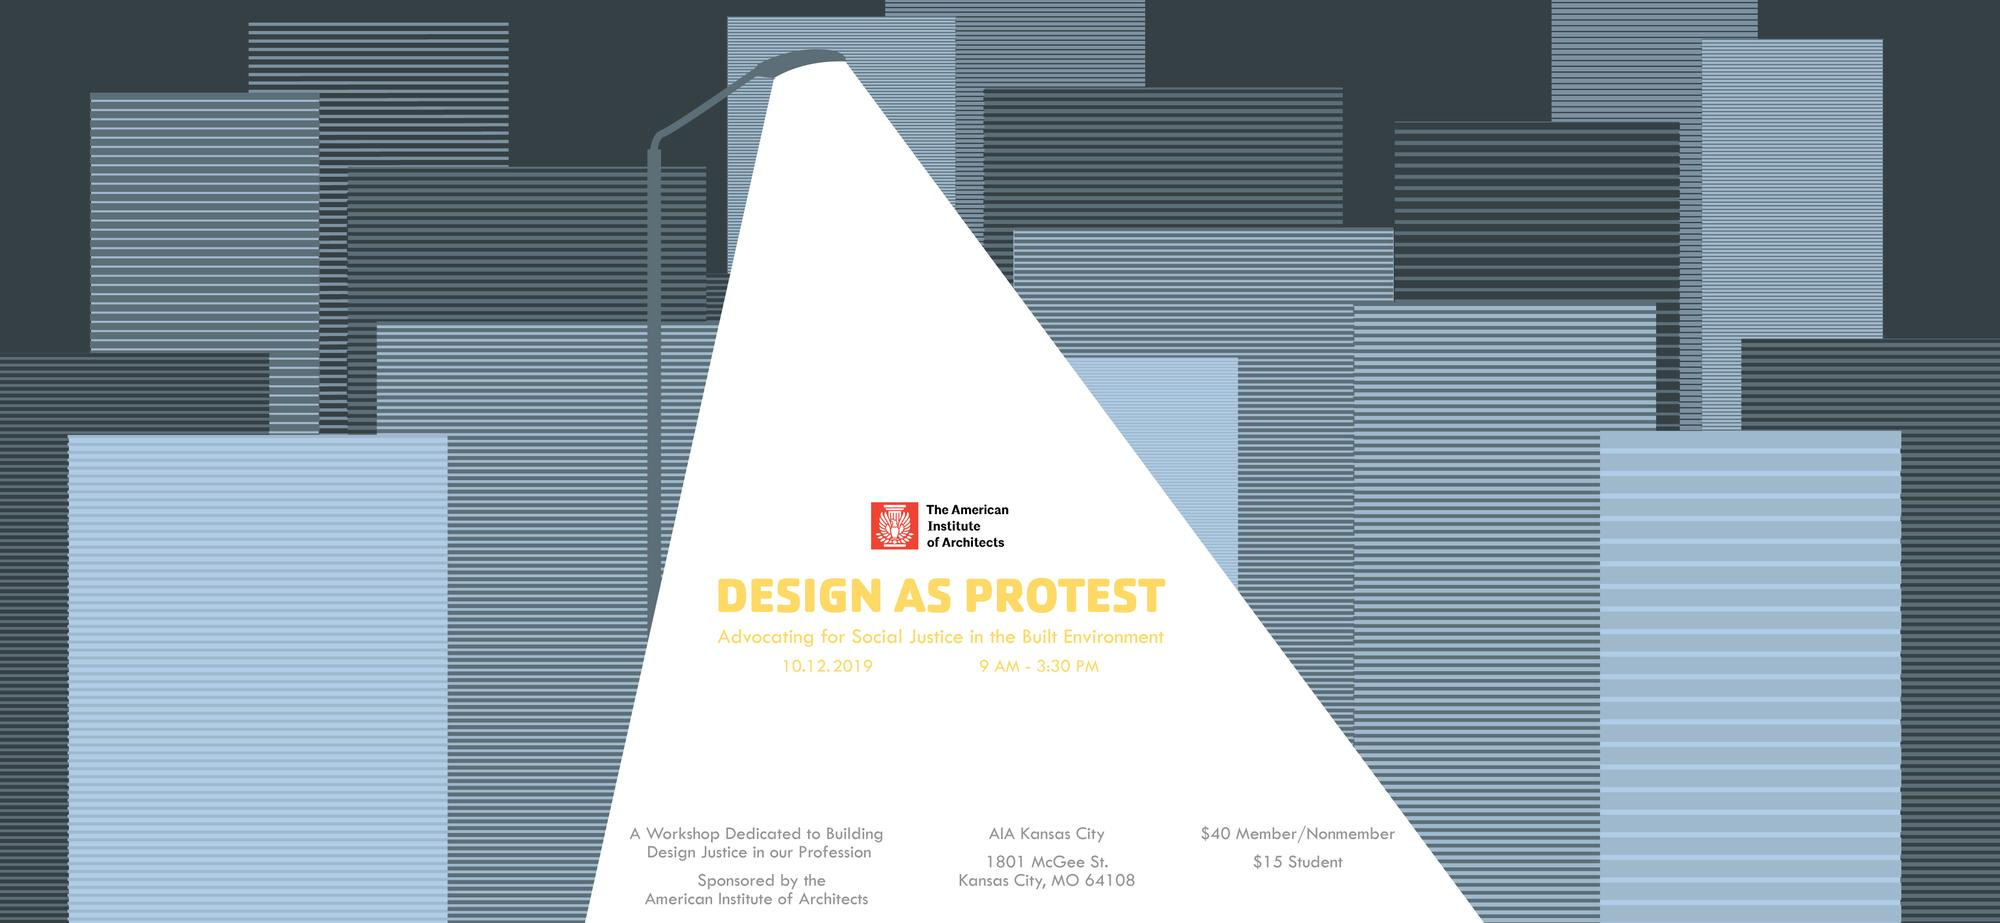 Design as Protest: Advocating for Social Justice in the Built Environment